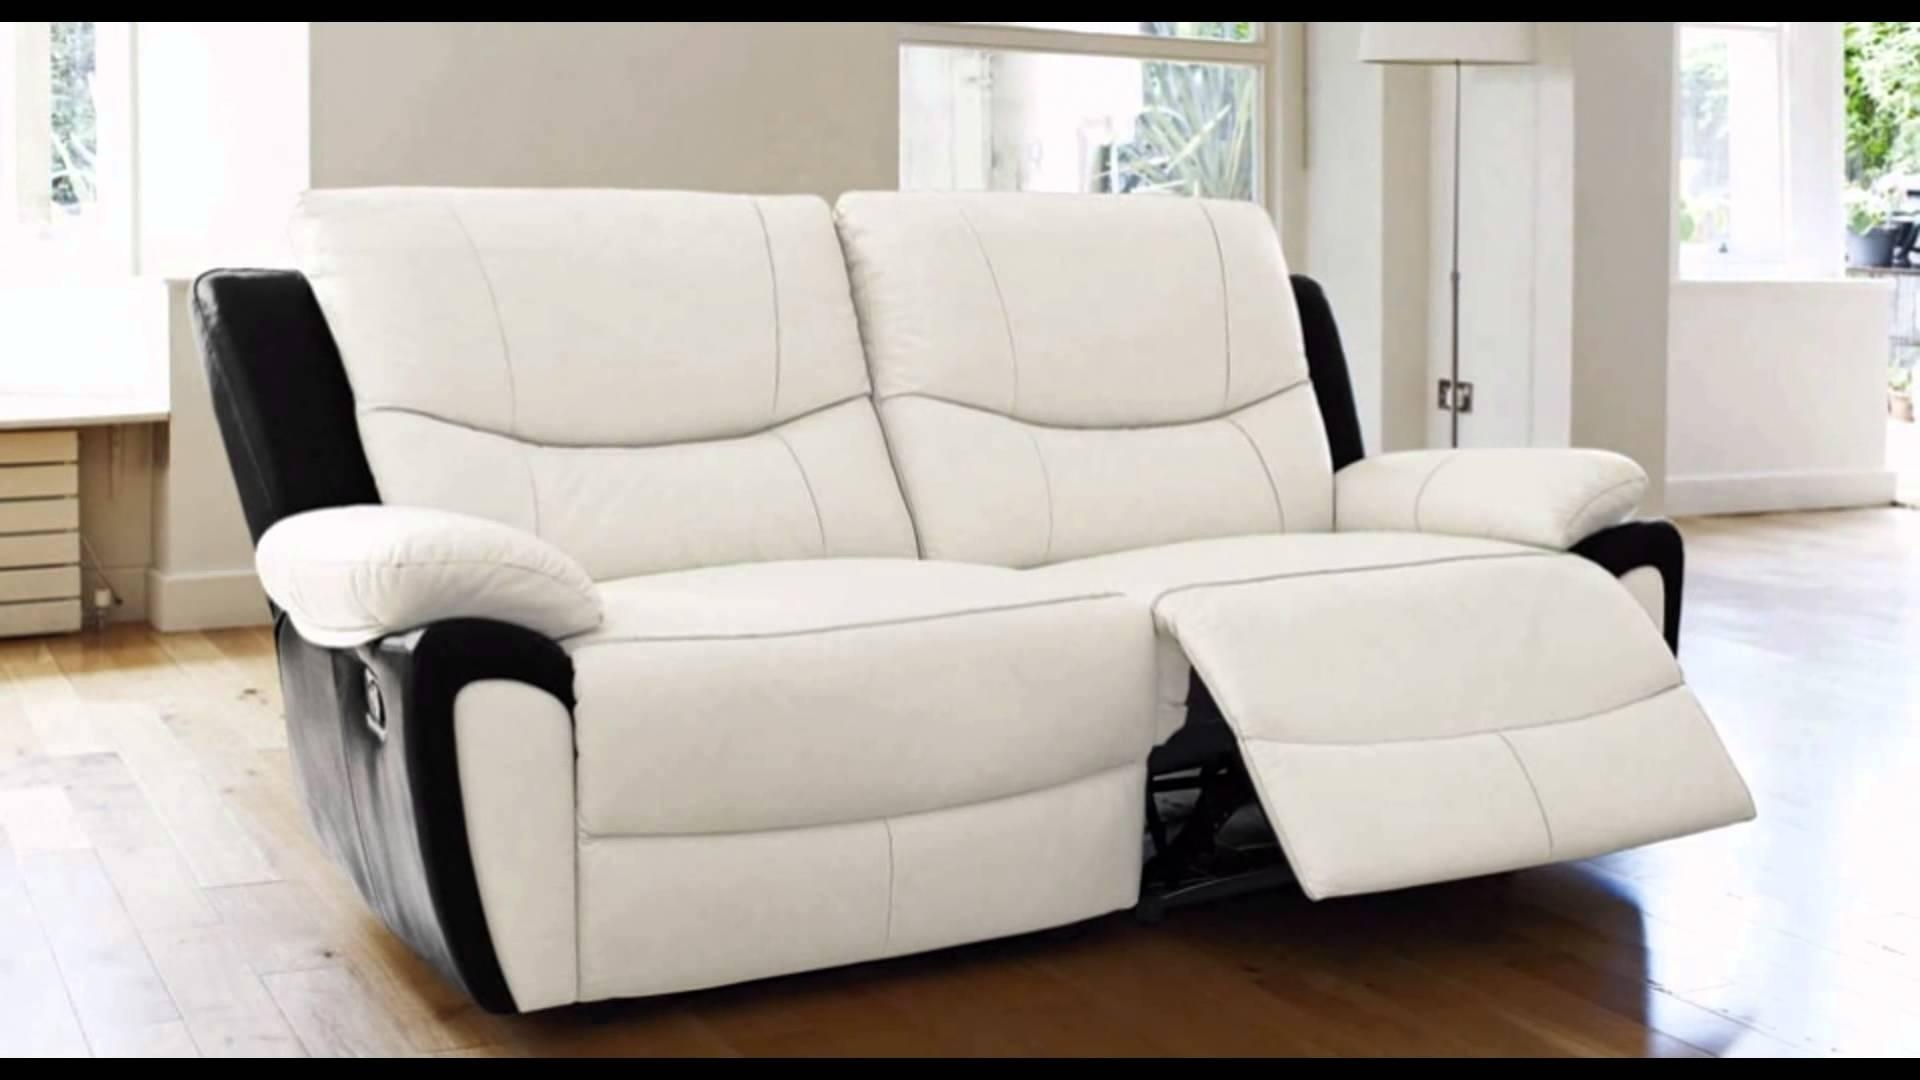 Recliner Sofa Bed Reclining Sofa Bed Hereo – Thesofa Throughout Rv Recliner Sofas (Image 10 of 20)